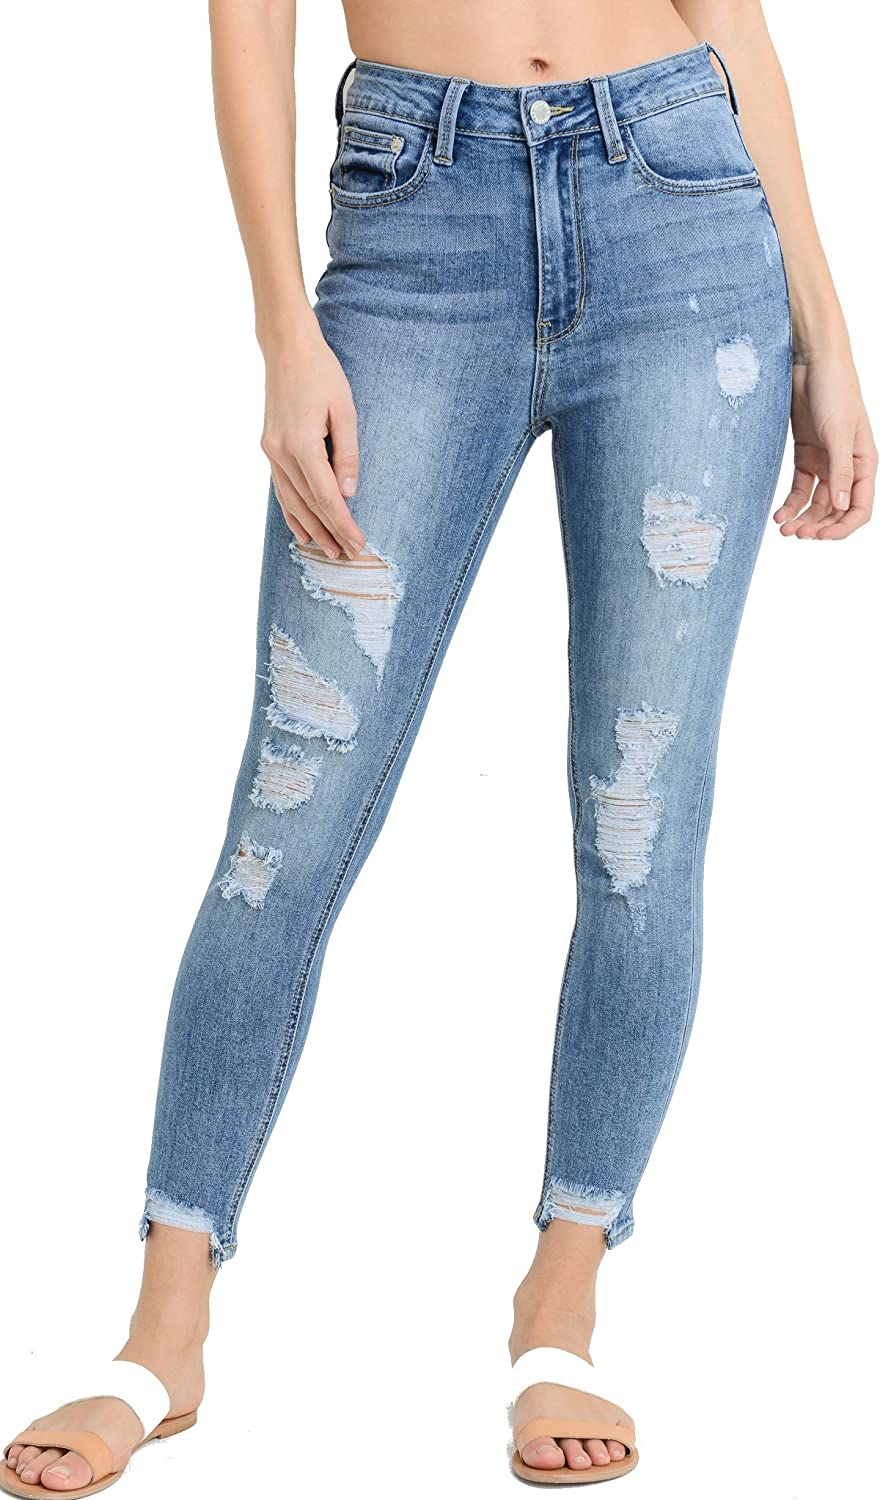 Just USA Jeans Women's High Rise Basic Skinny Denim Pants